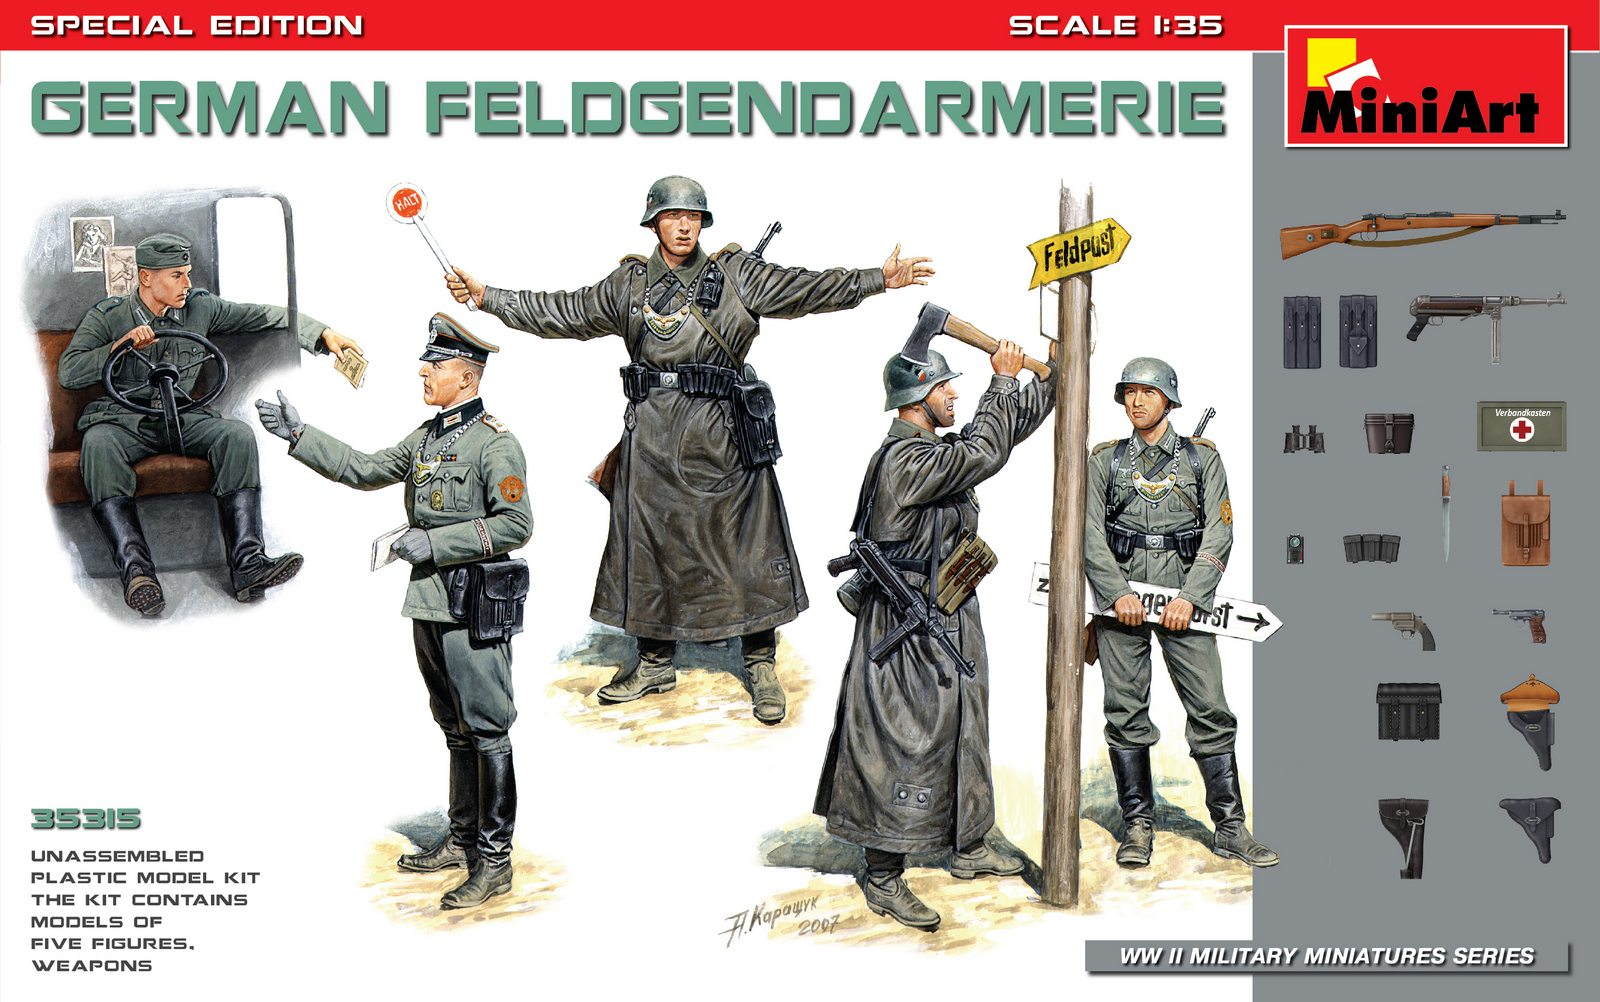 MiniArt German Feldgendarmerie Special Edition (1/35)